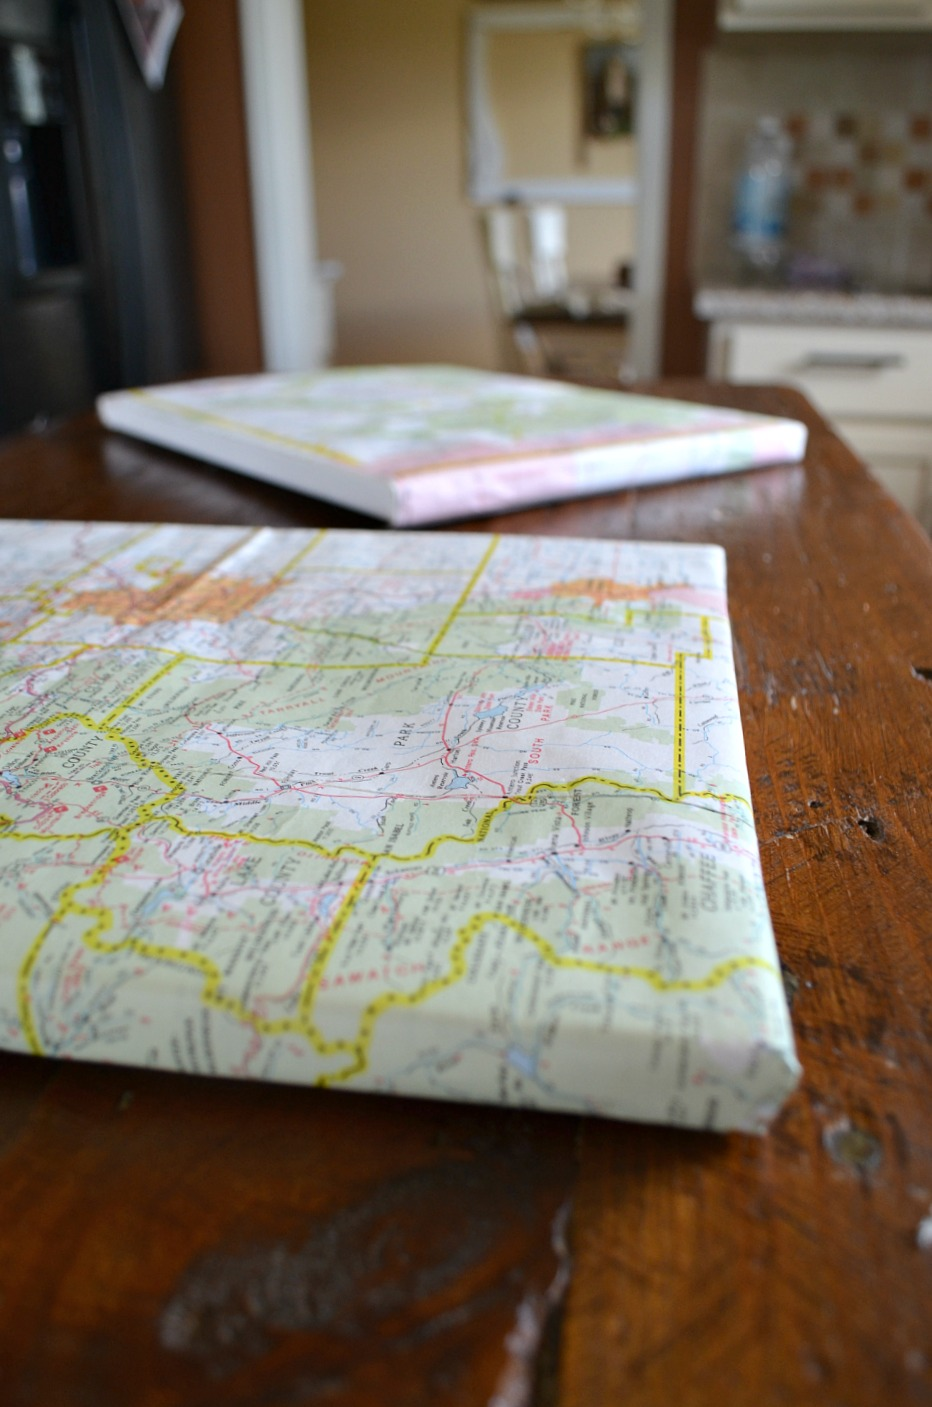 10 minute vintage map DIY